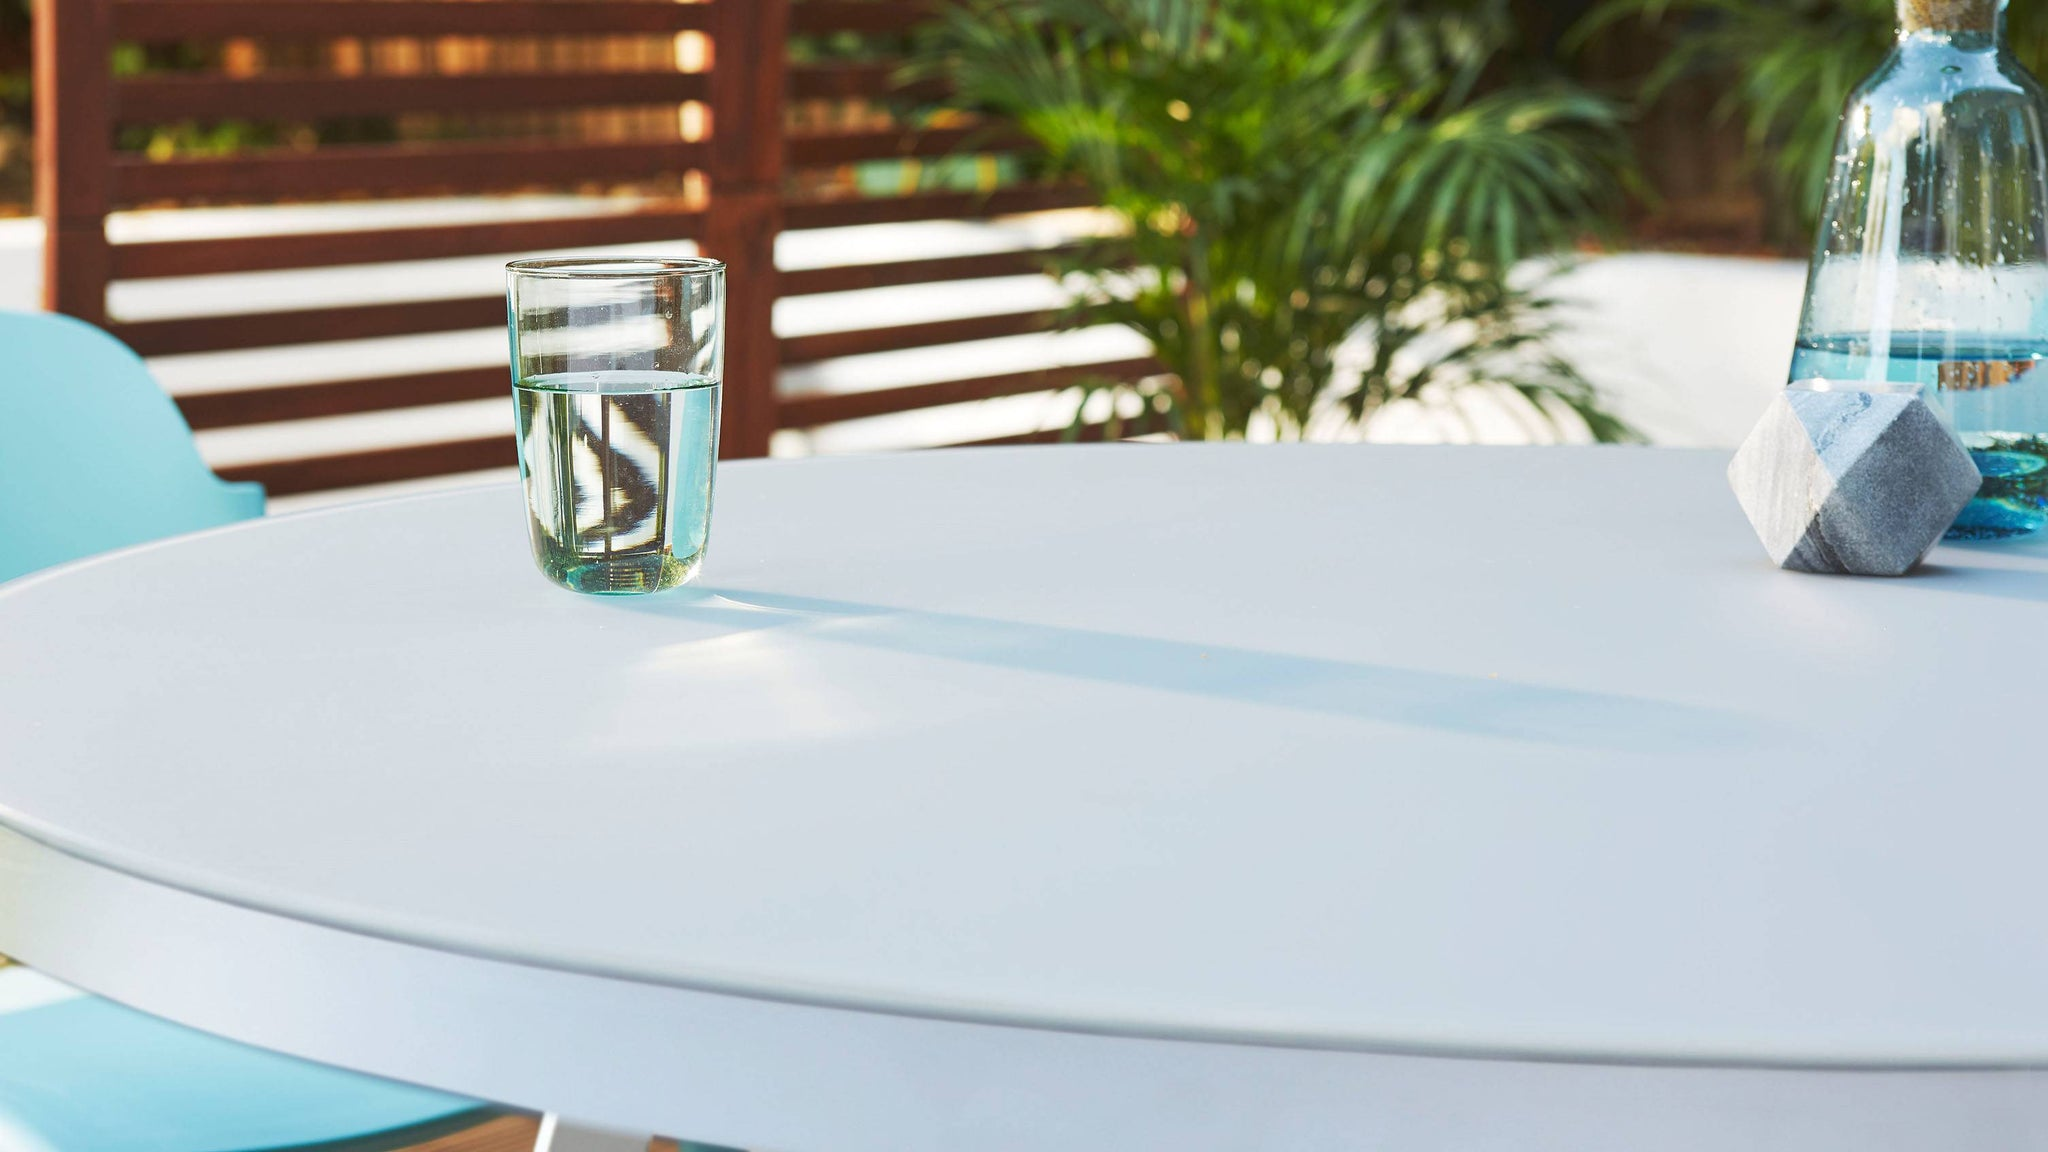 etched glass table and plastic chair